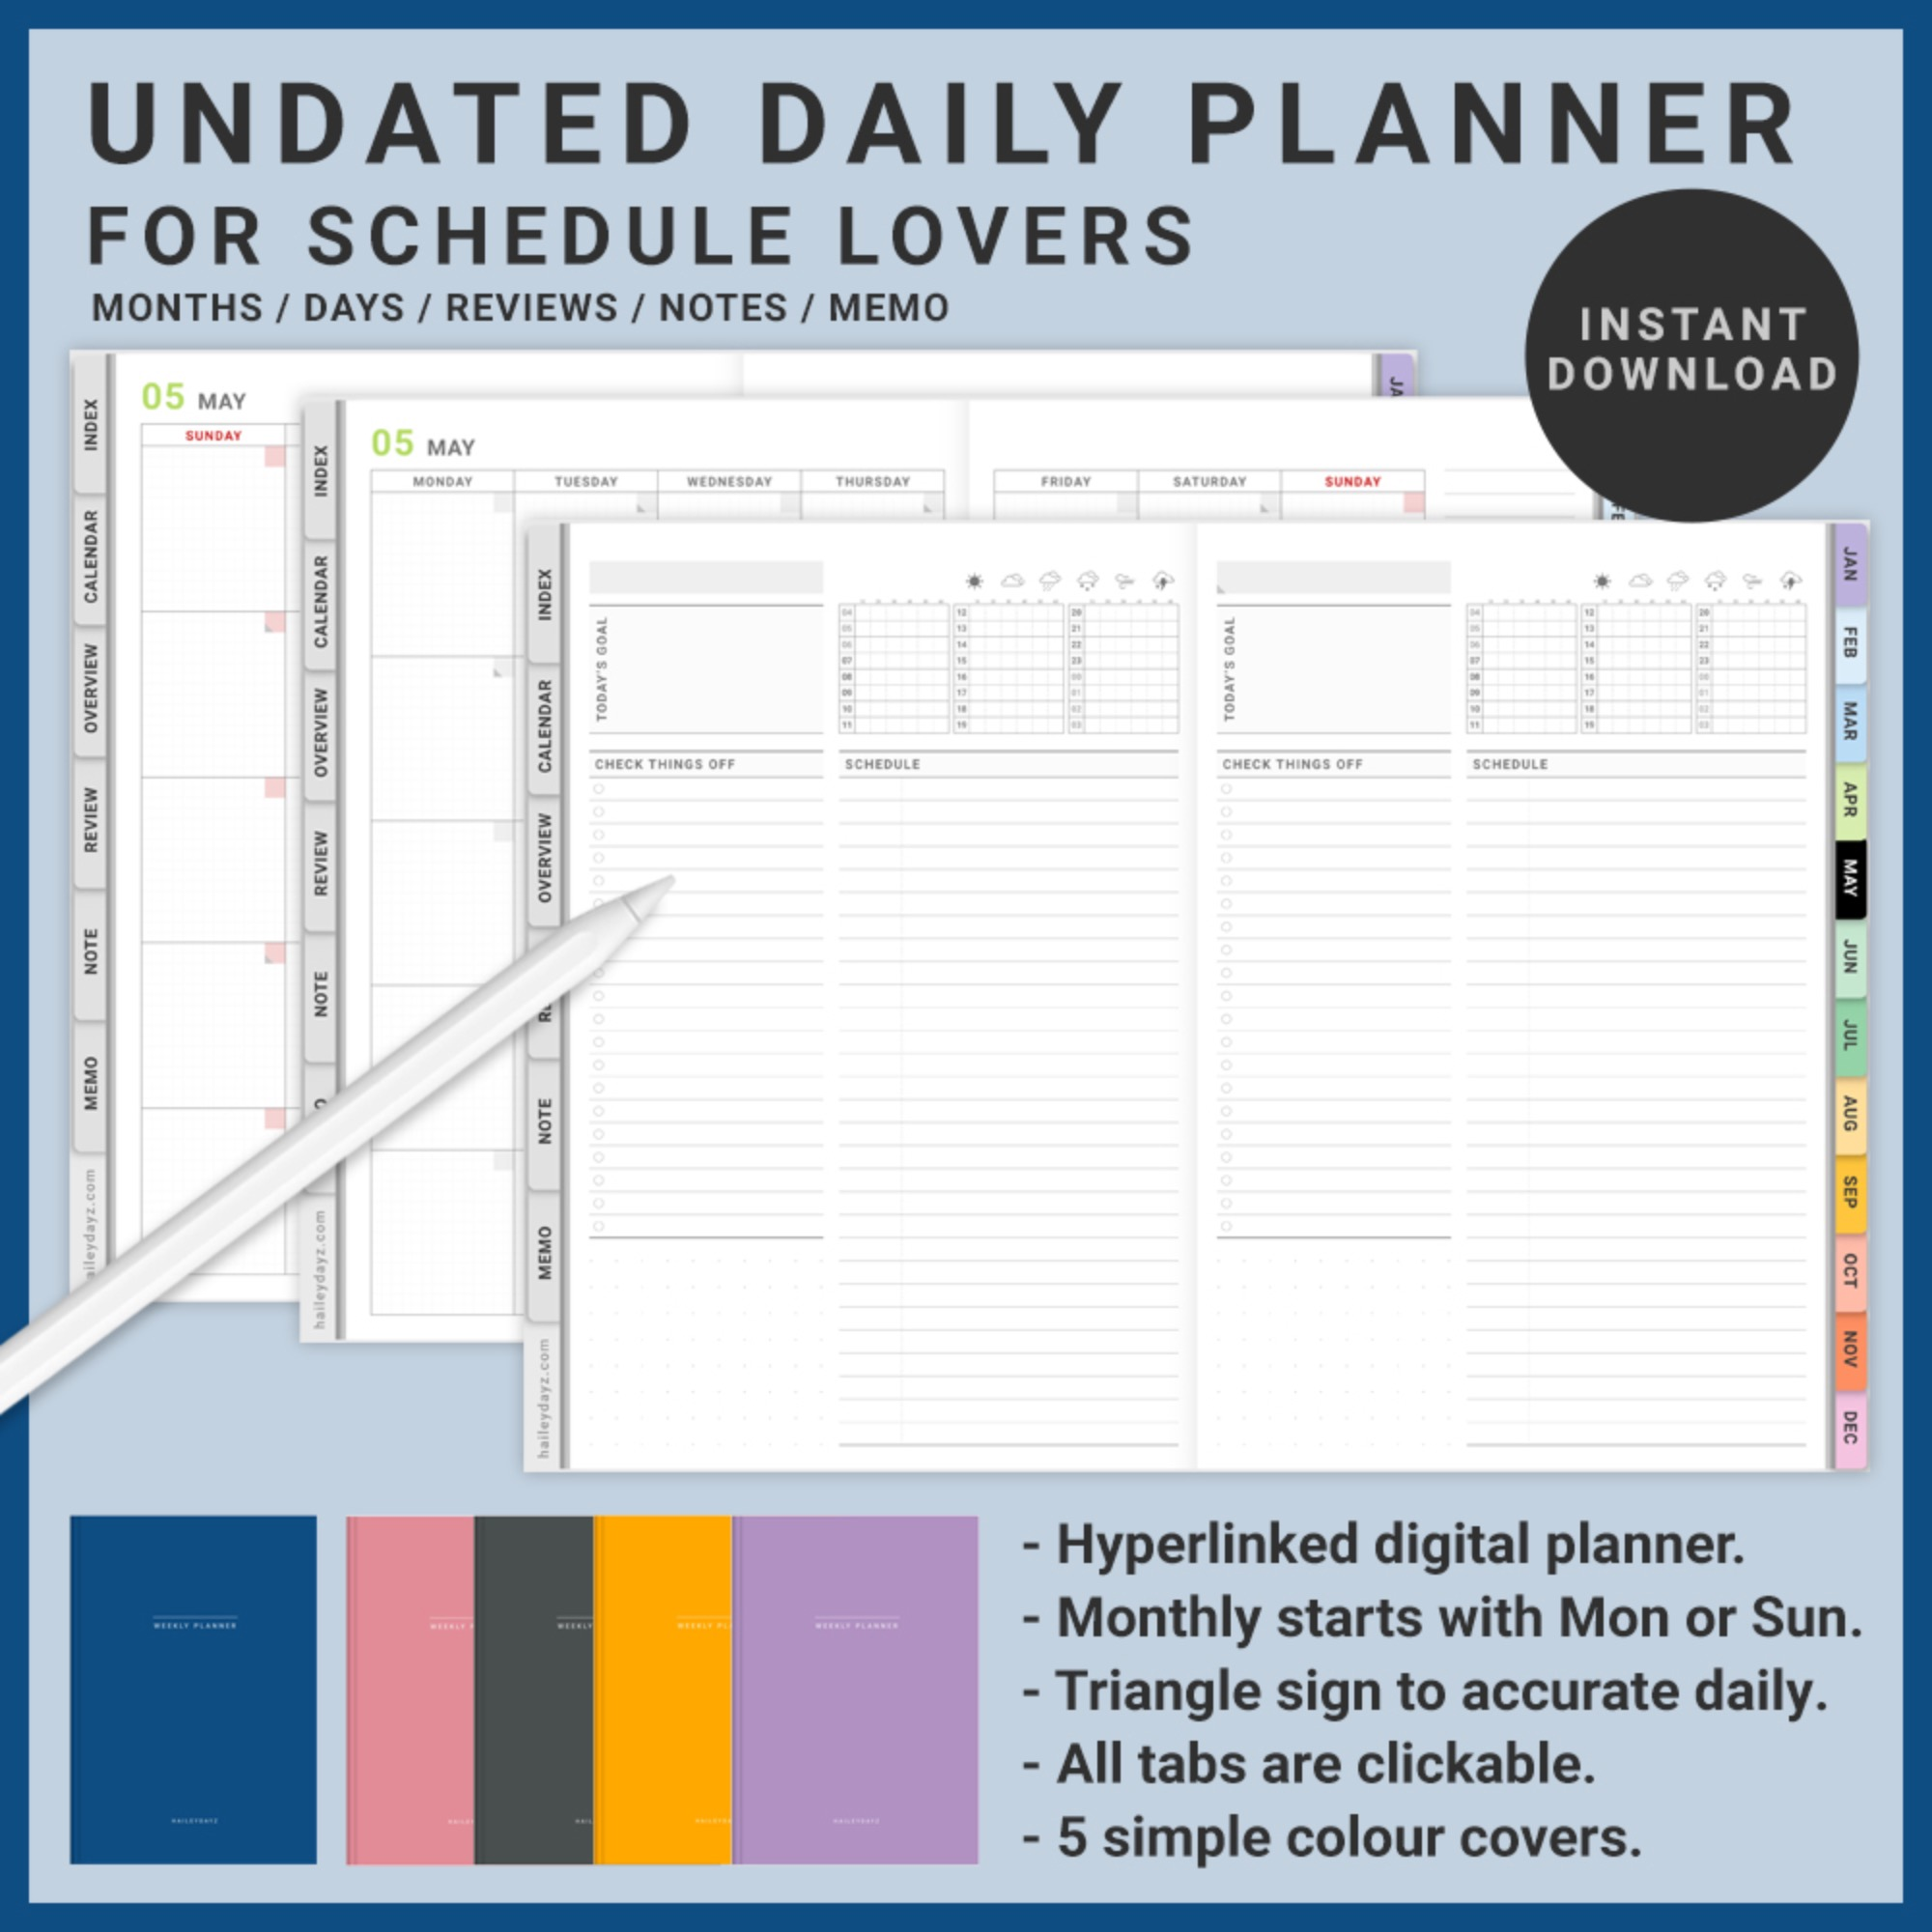 Undated Schedule Lover Planner